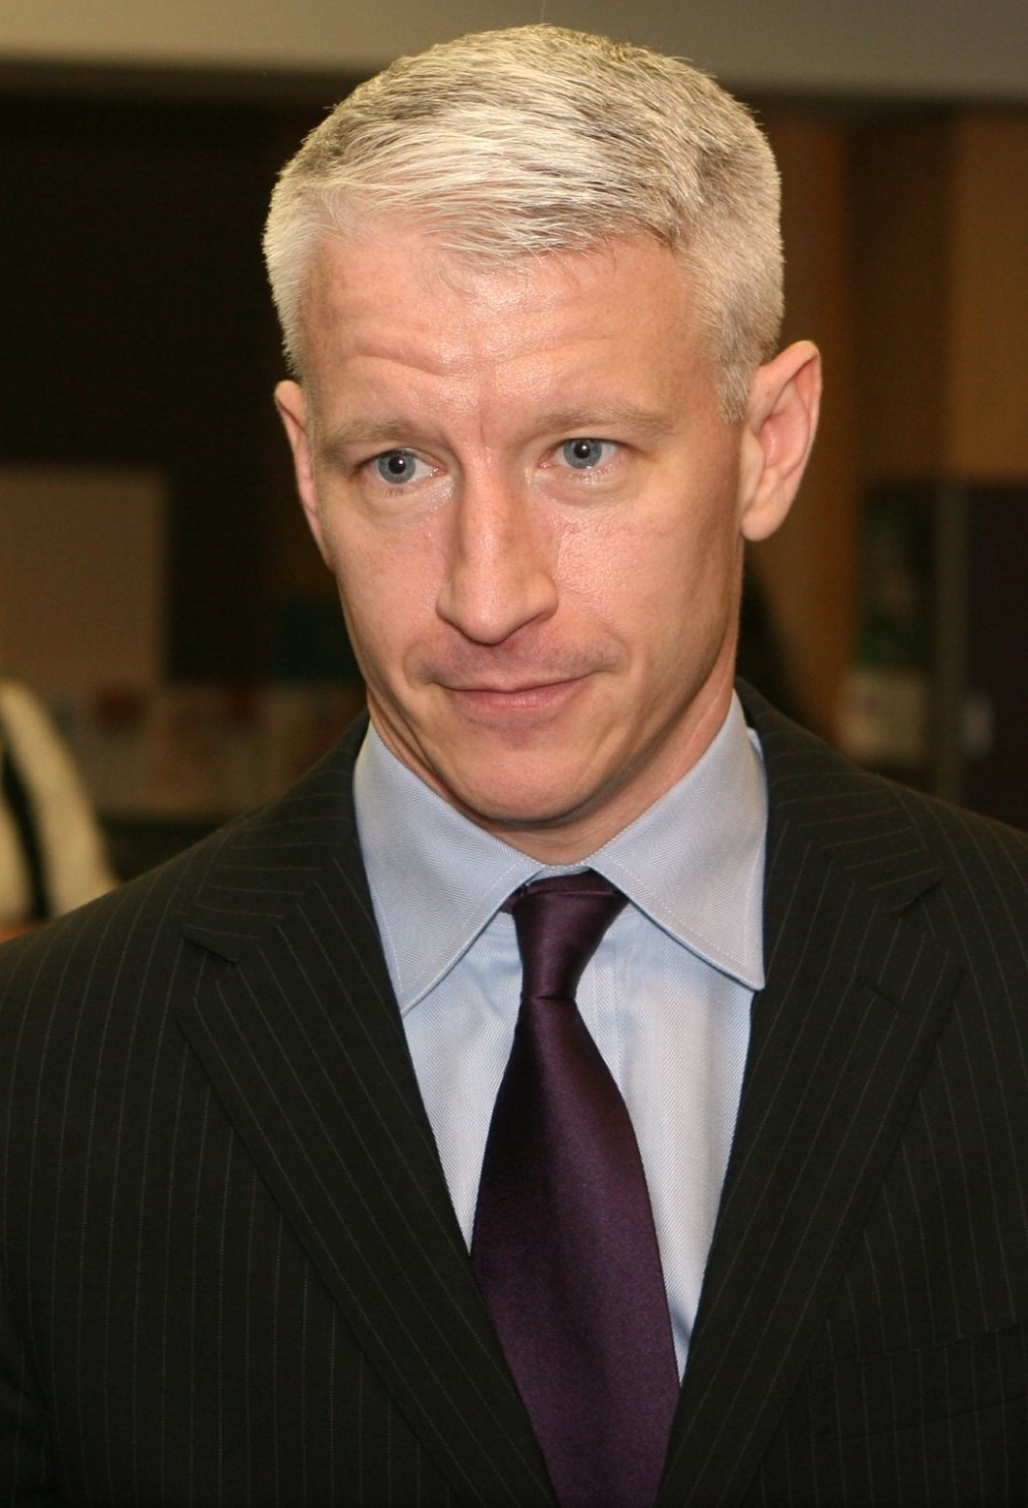 Anderson Cooper, star of CNN